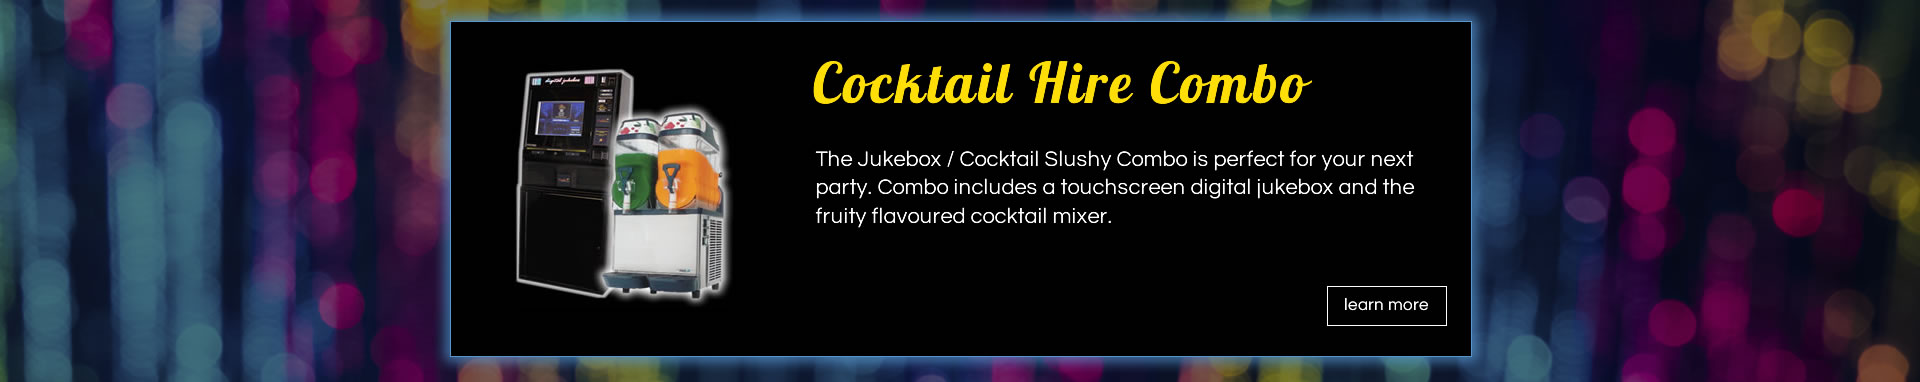 cocktail hire combo